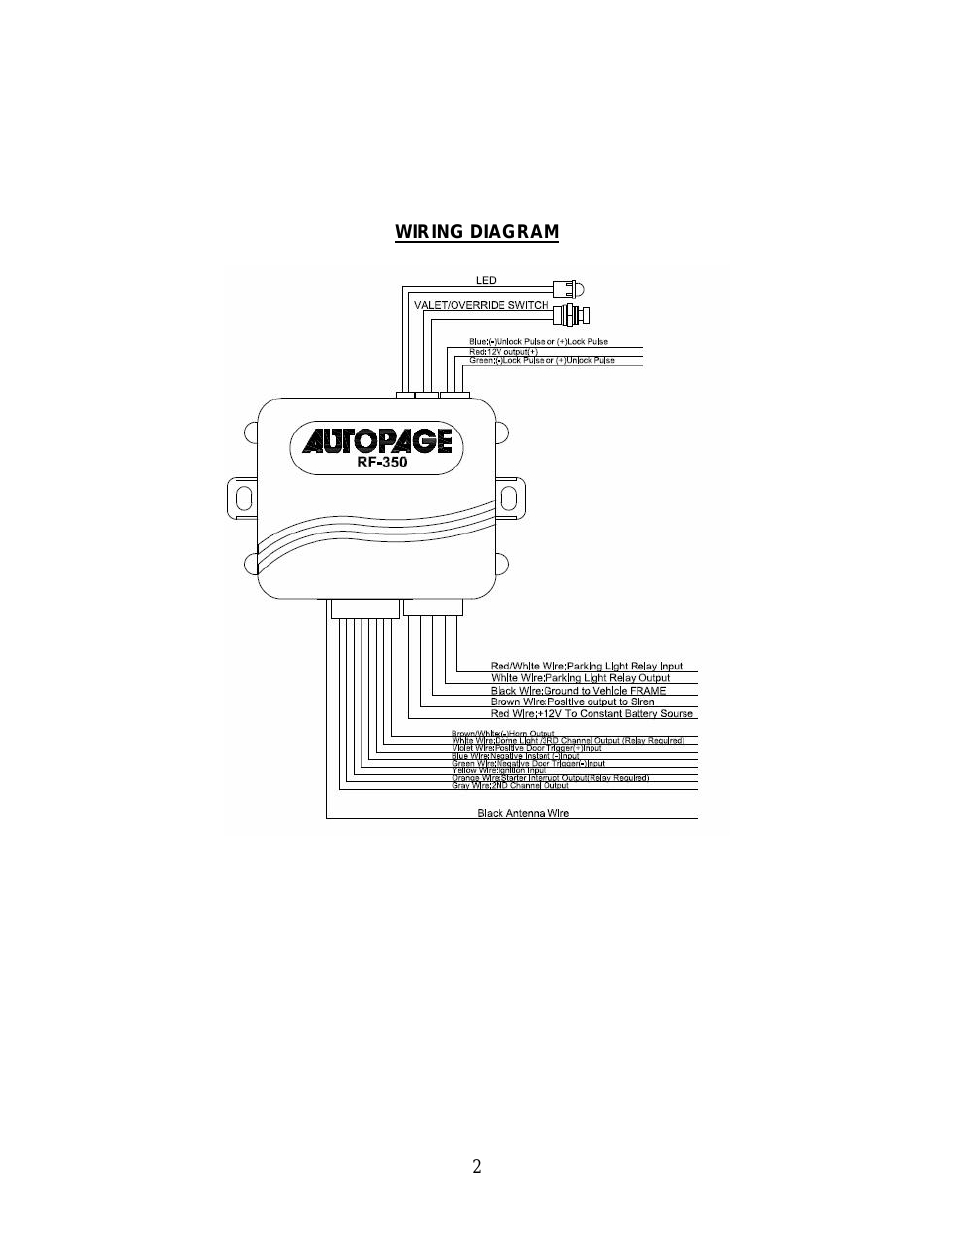 Ready Remote Wiring Diagram Panther Pa720c Remote Start Wiring Diagrams 1 Wiring Diagram Source